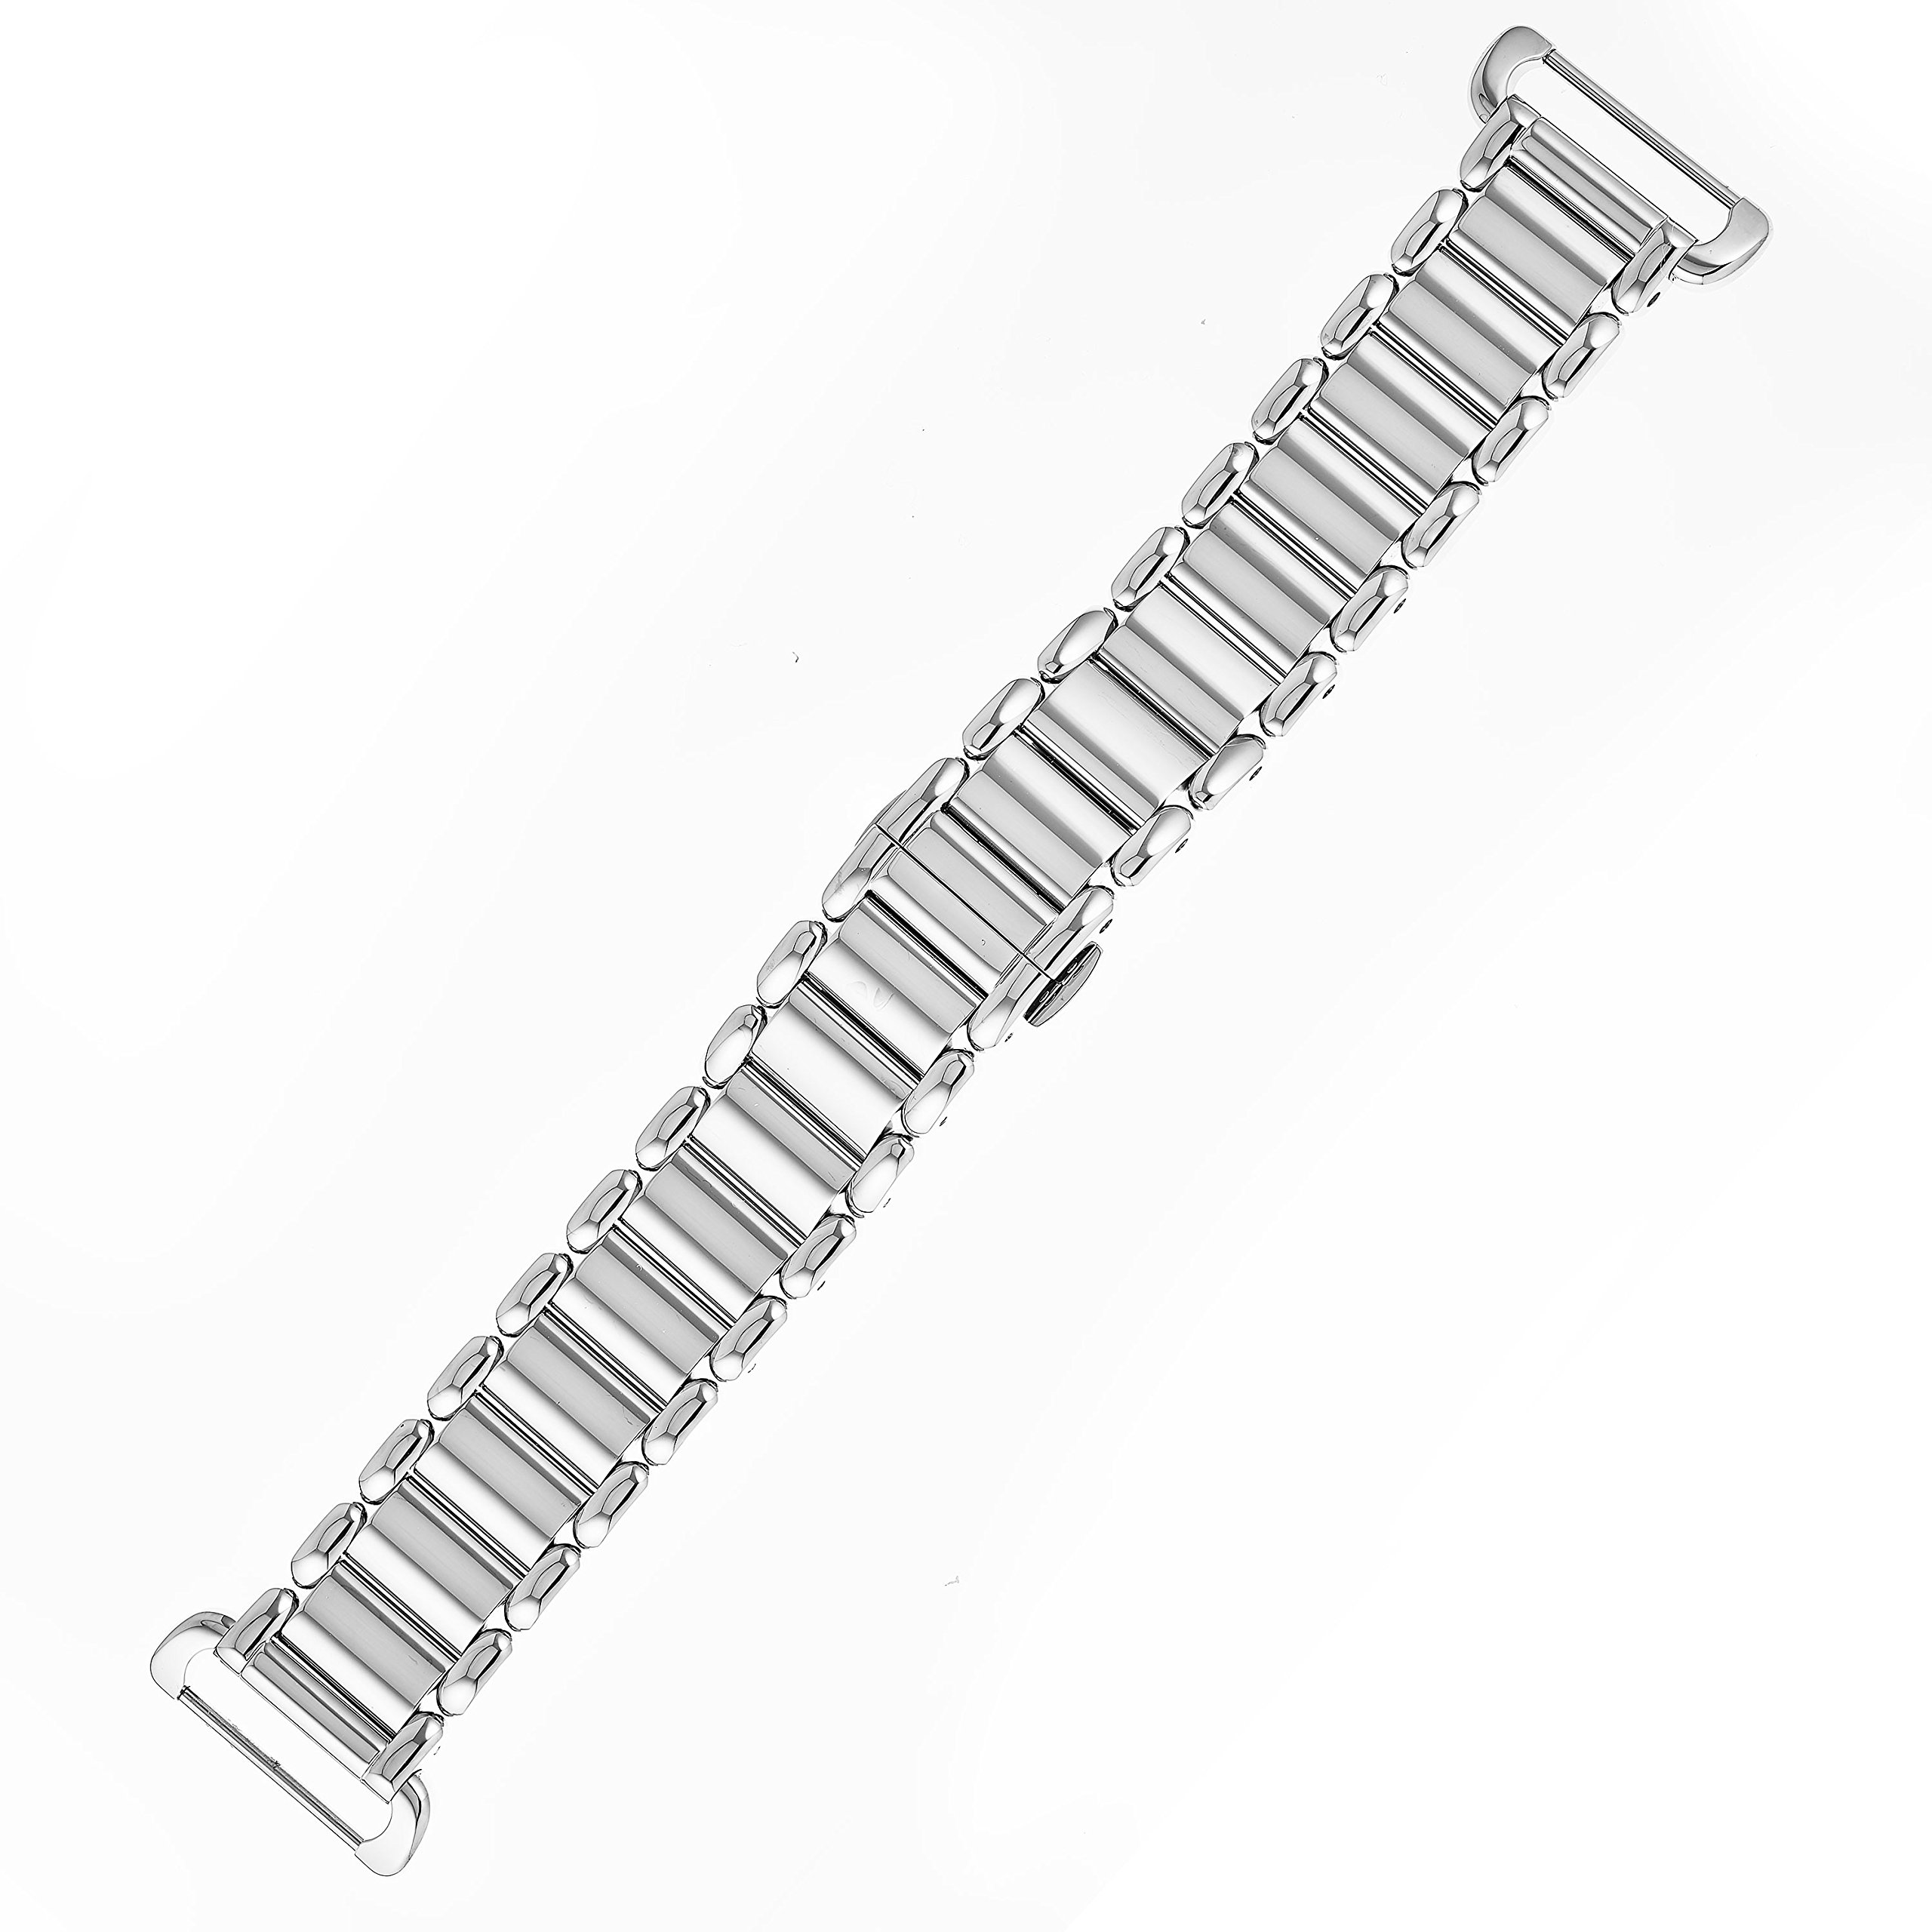 Fendi Selleria Interchangeable Replacement Watch Band - 18mm Stainless Steel Bracelet with Push Button Deployment Clasp BR8653